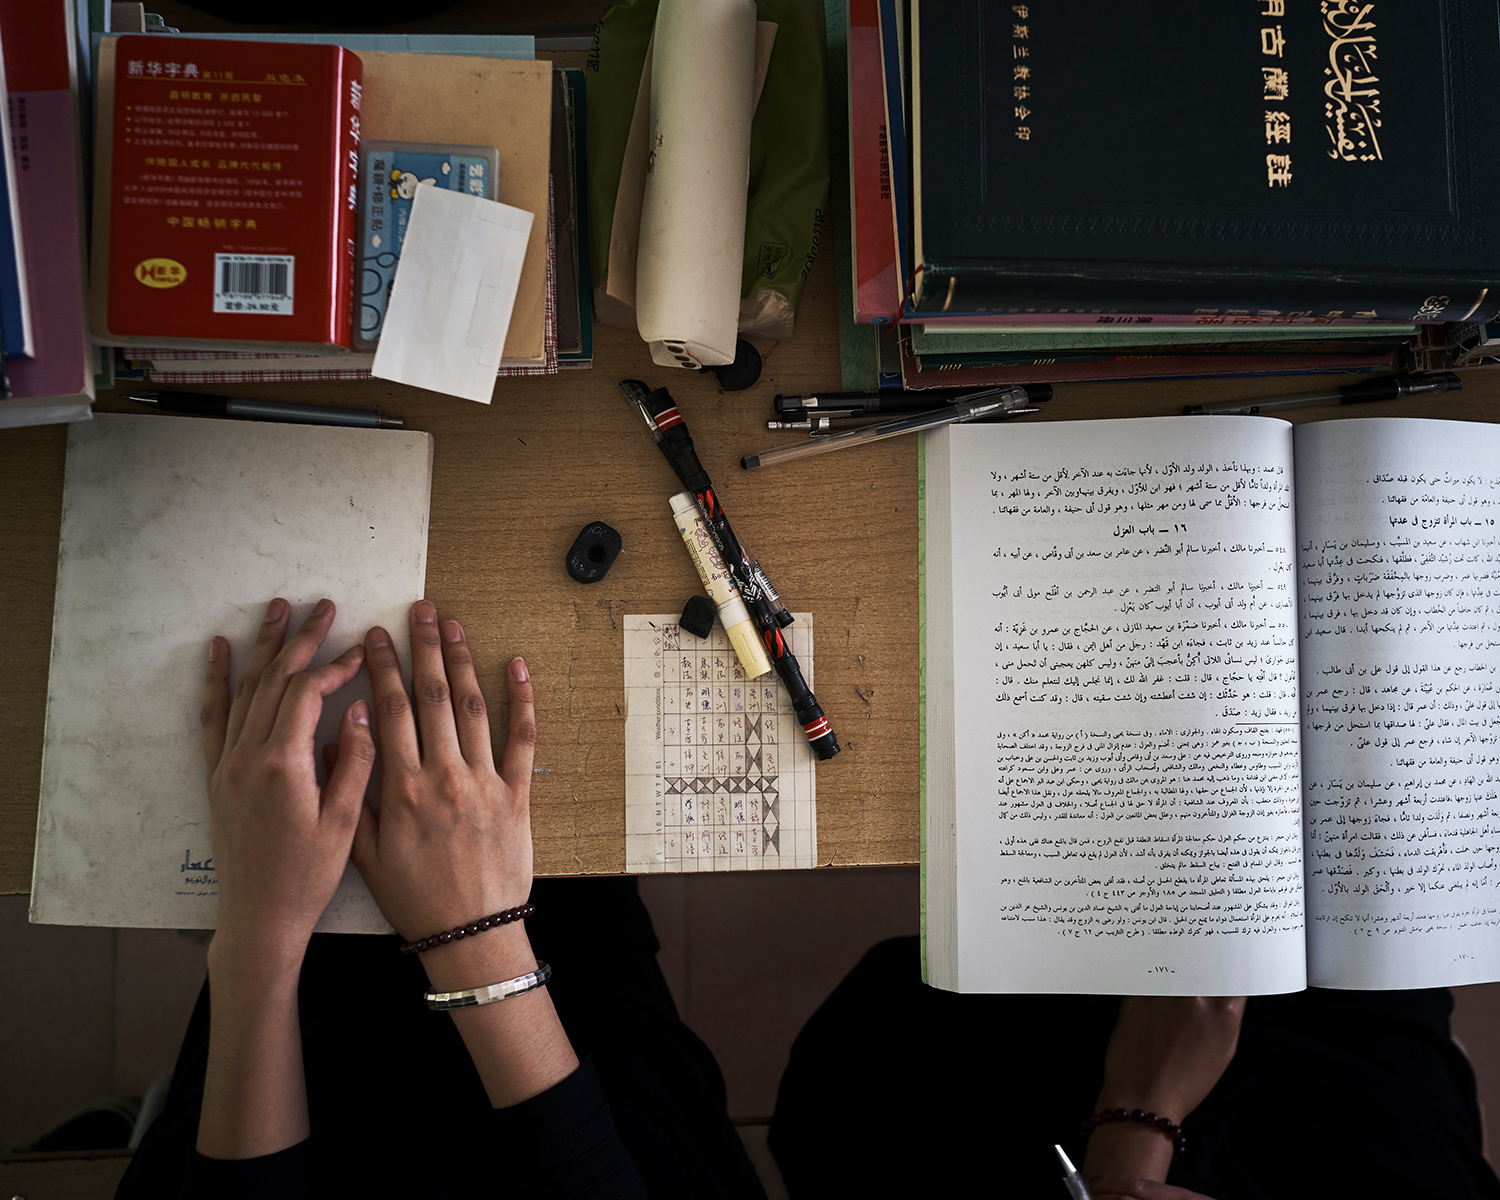 A student's desk at the Arabic school in Nanguan Mosque, June 2016. All textbooks are in Arabic, only a dictionary is in Chinese. After the 2014 knife attack in which several assailants from the Xinjiang Uighur Autonomous Region stabbed 31 people to death at a train station in Kunming, Yunnan's capital city, provincial authorities expelled Muslims who were not from Yunnan. Since then, only students from Yunnan have attended the school.